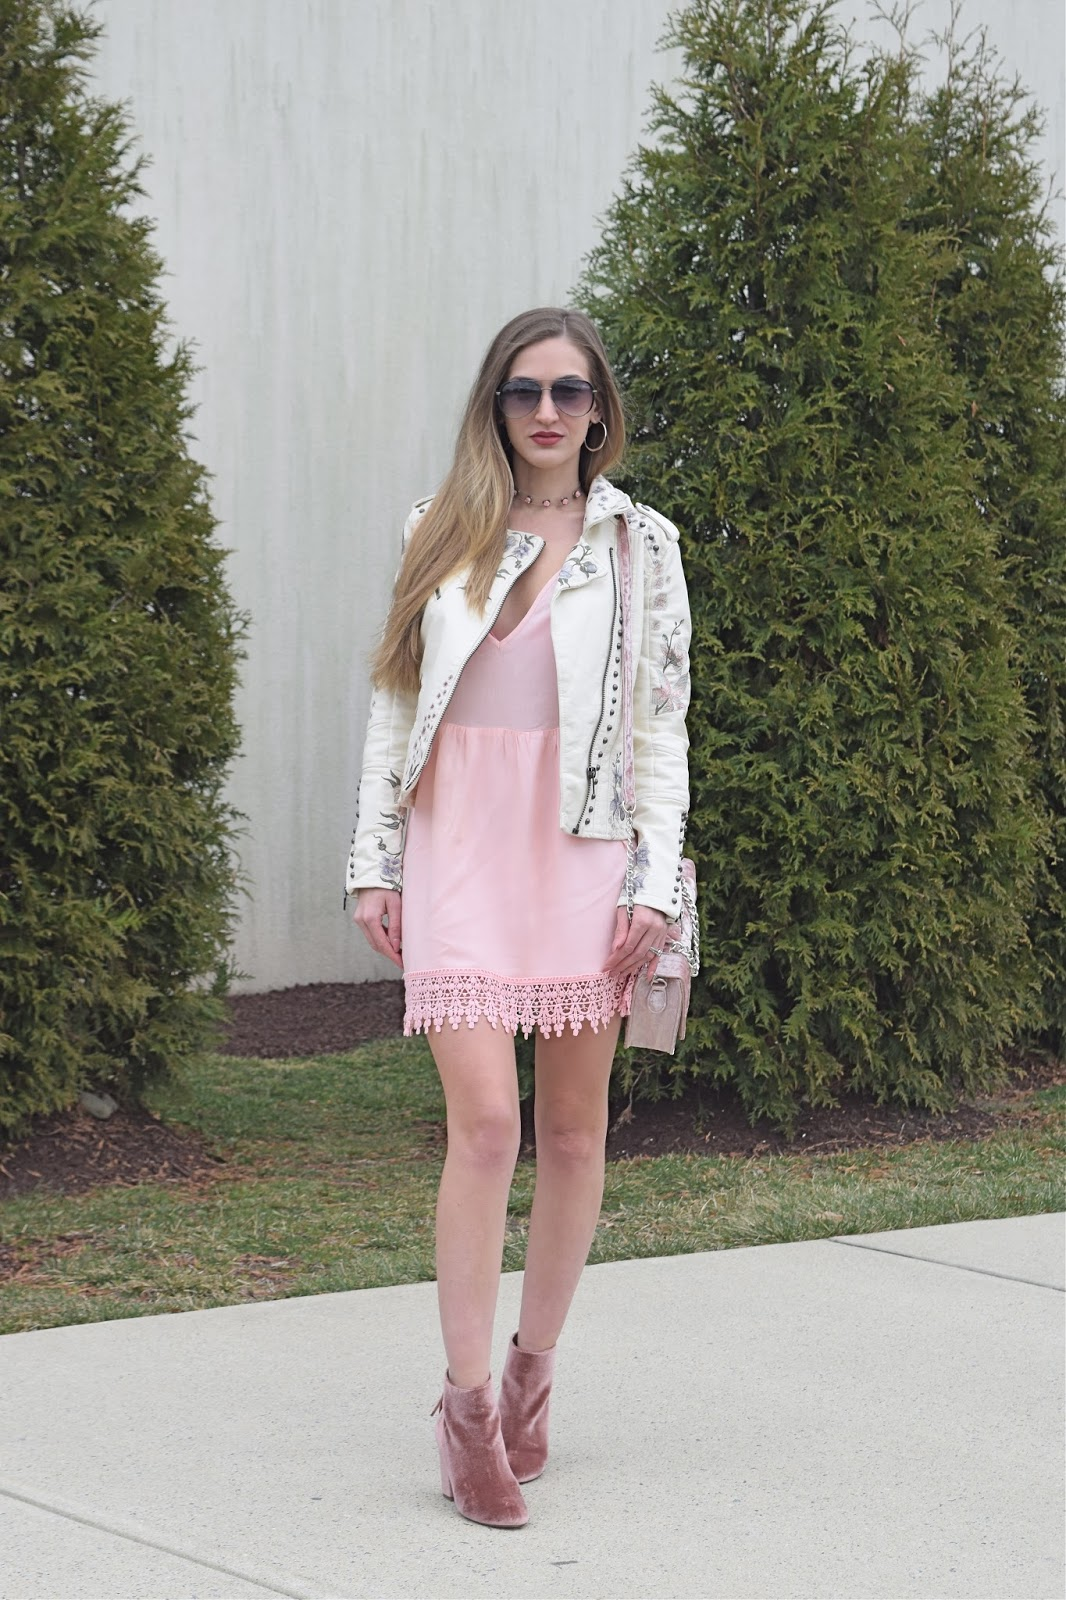 wearing blank nyc vegnan leather embroidered jacket, tobi pink dress, steve madden cynthiav pink velvet booties, wearing clear choker necklace